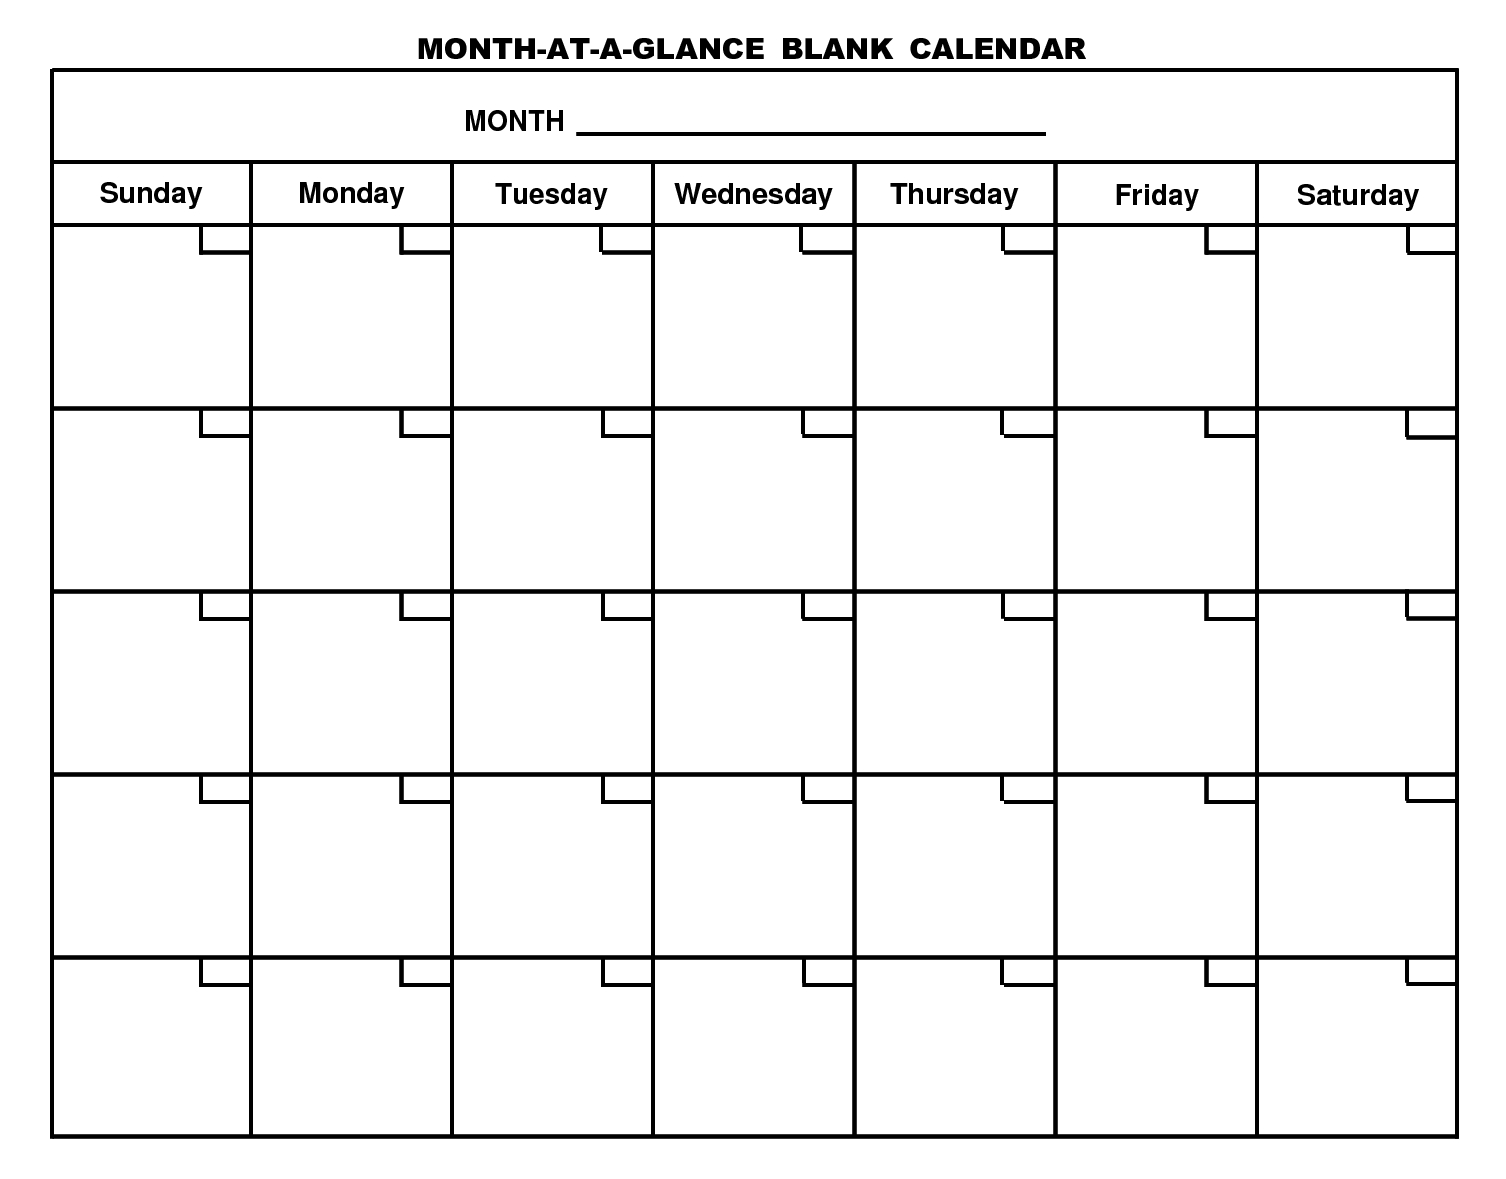 Generic Monthly Calendar Template  Bolan.horizonconsulting.co pertaining to Preschool Monthly Calendar Template